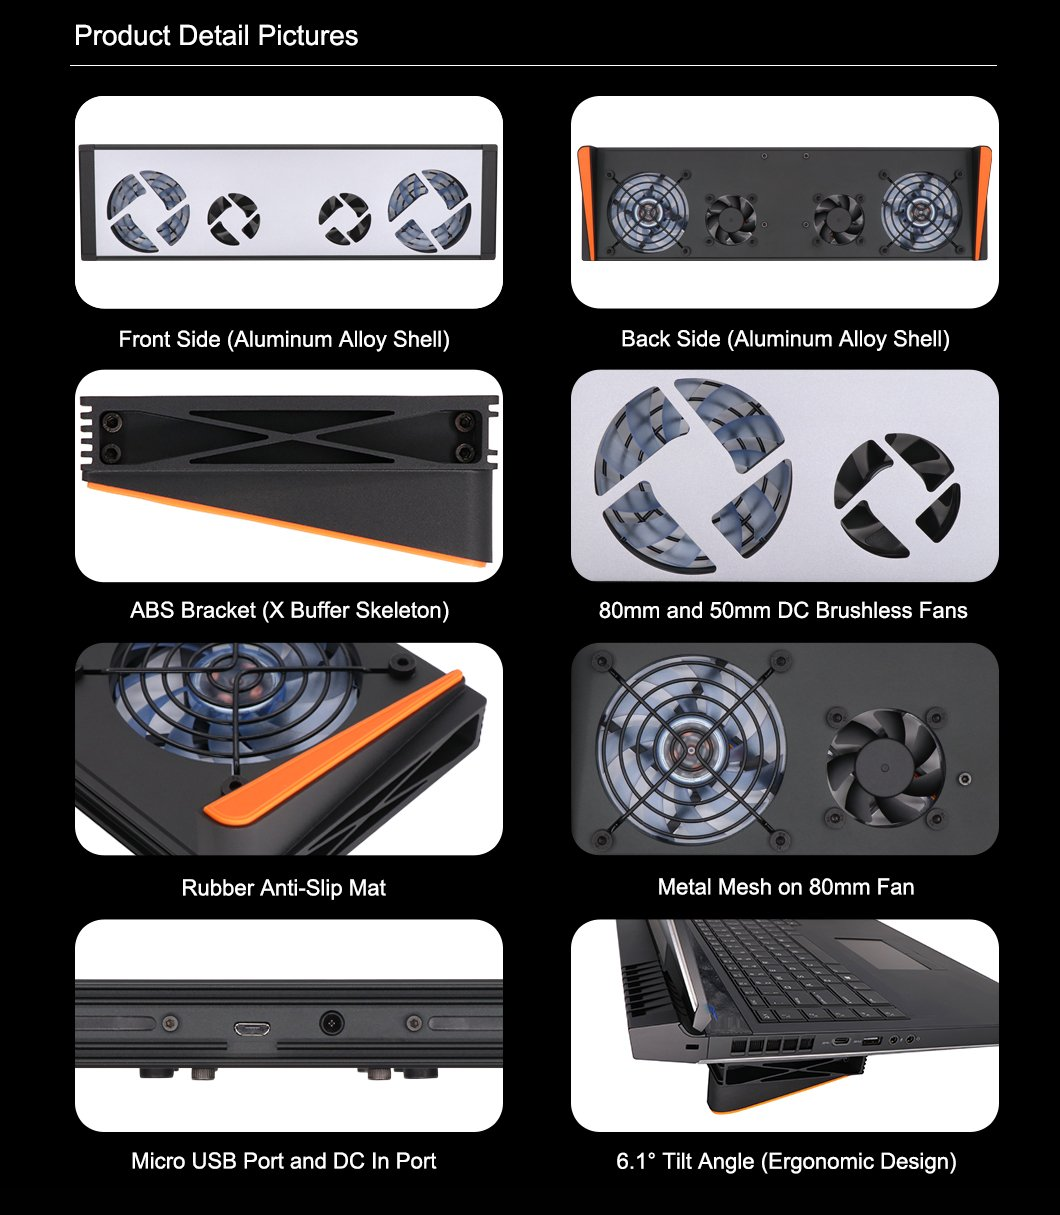 Advancing Gene Smart Laptop Cooler Cooling Pad for Alienware AW17R4 and AW17R5